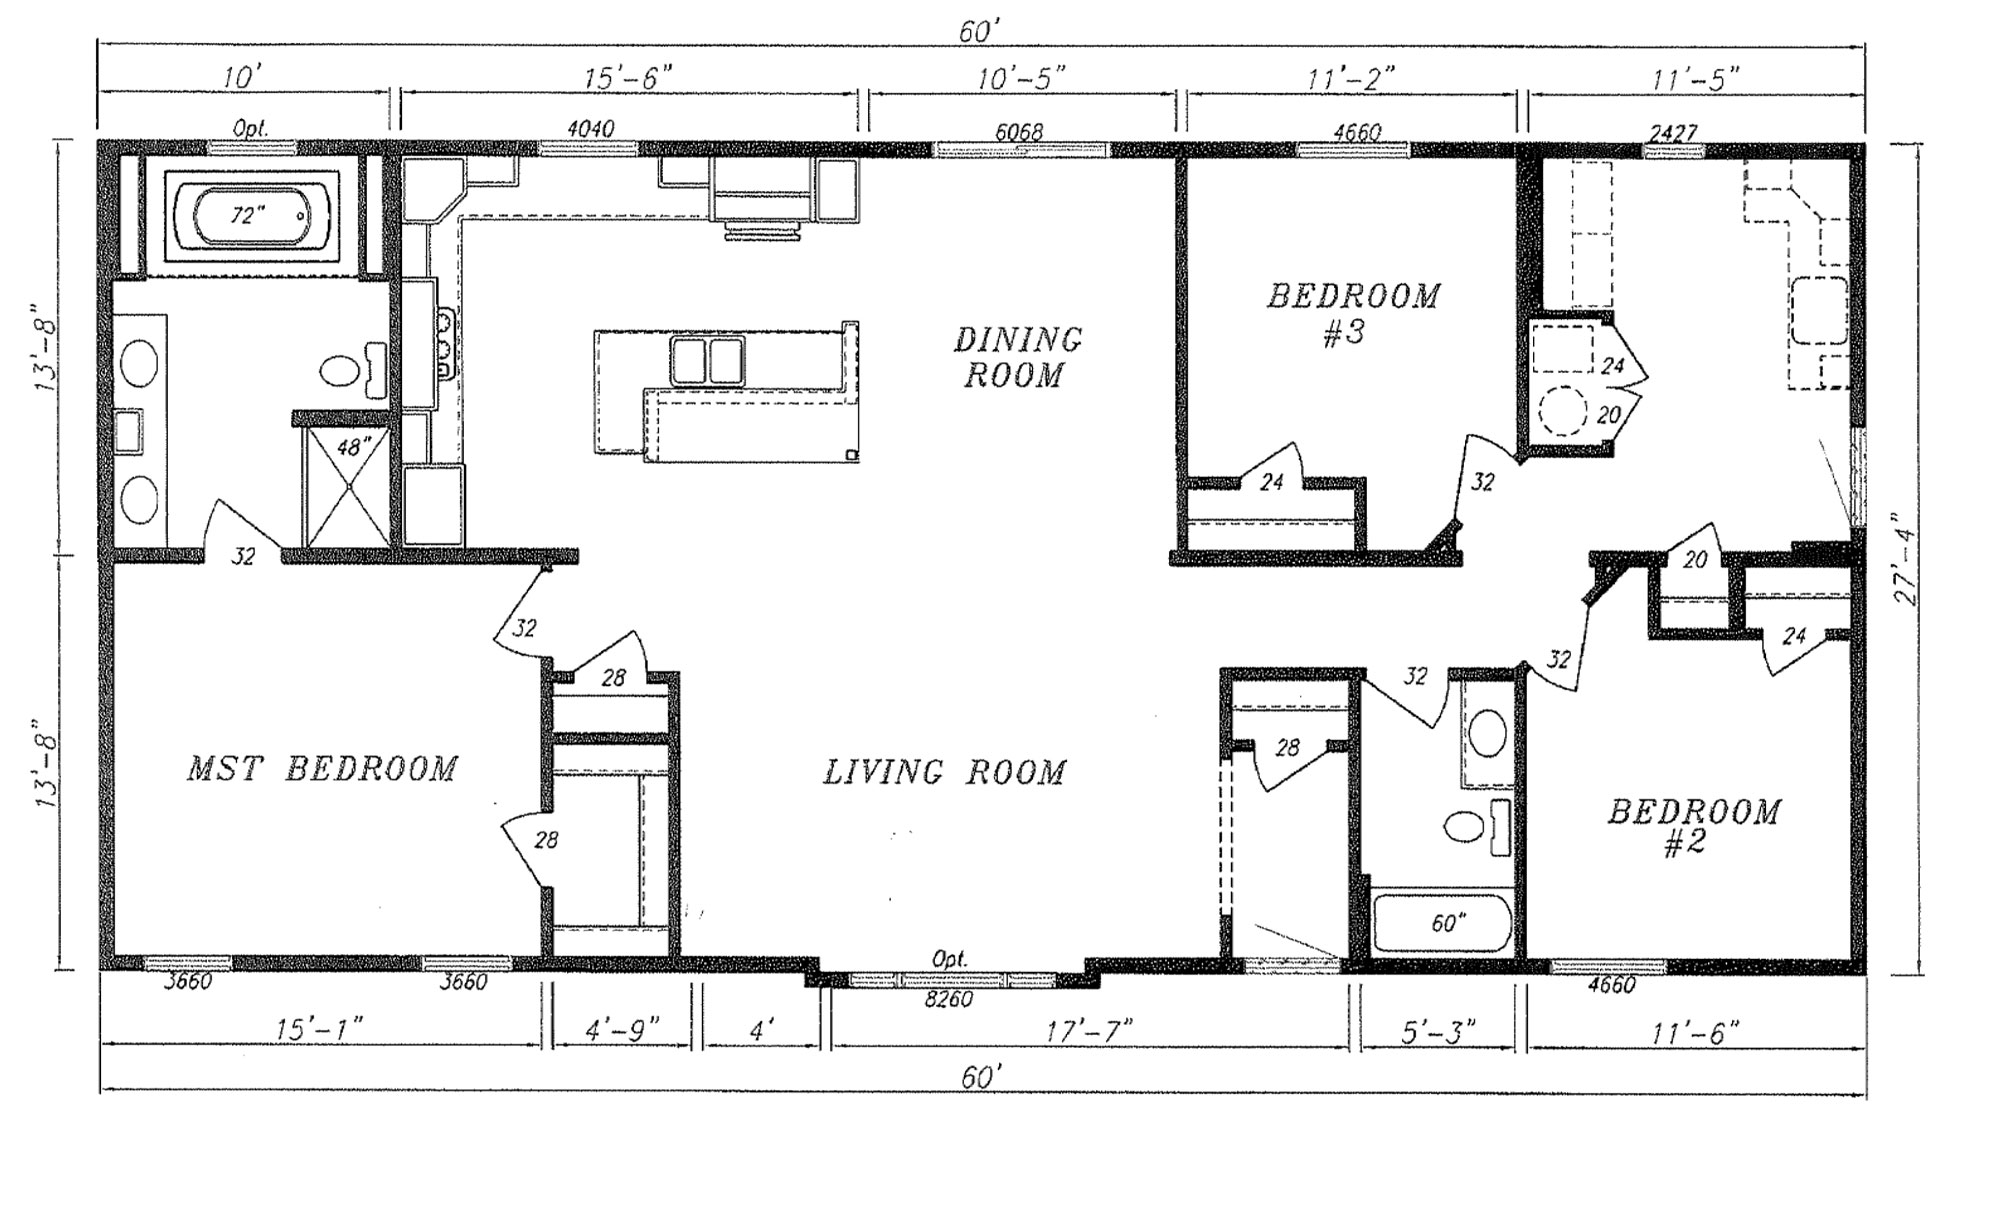 Highland prairie view ideal homes for Ideal homes floor plans